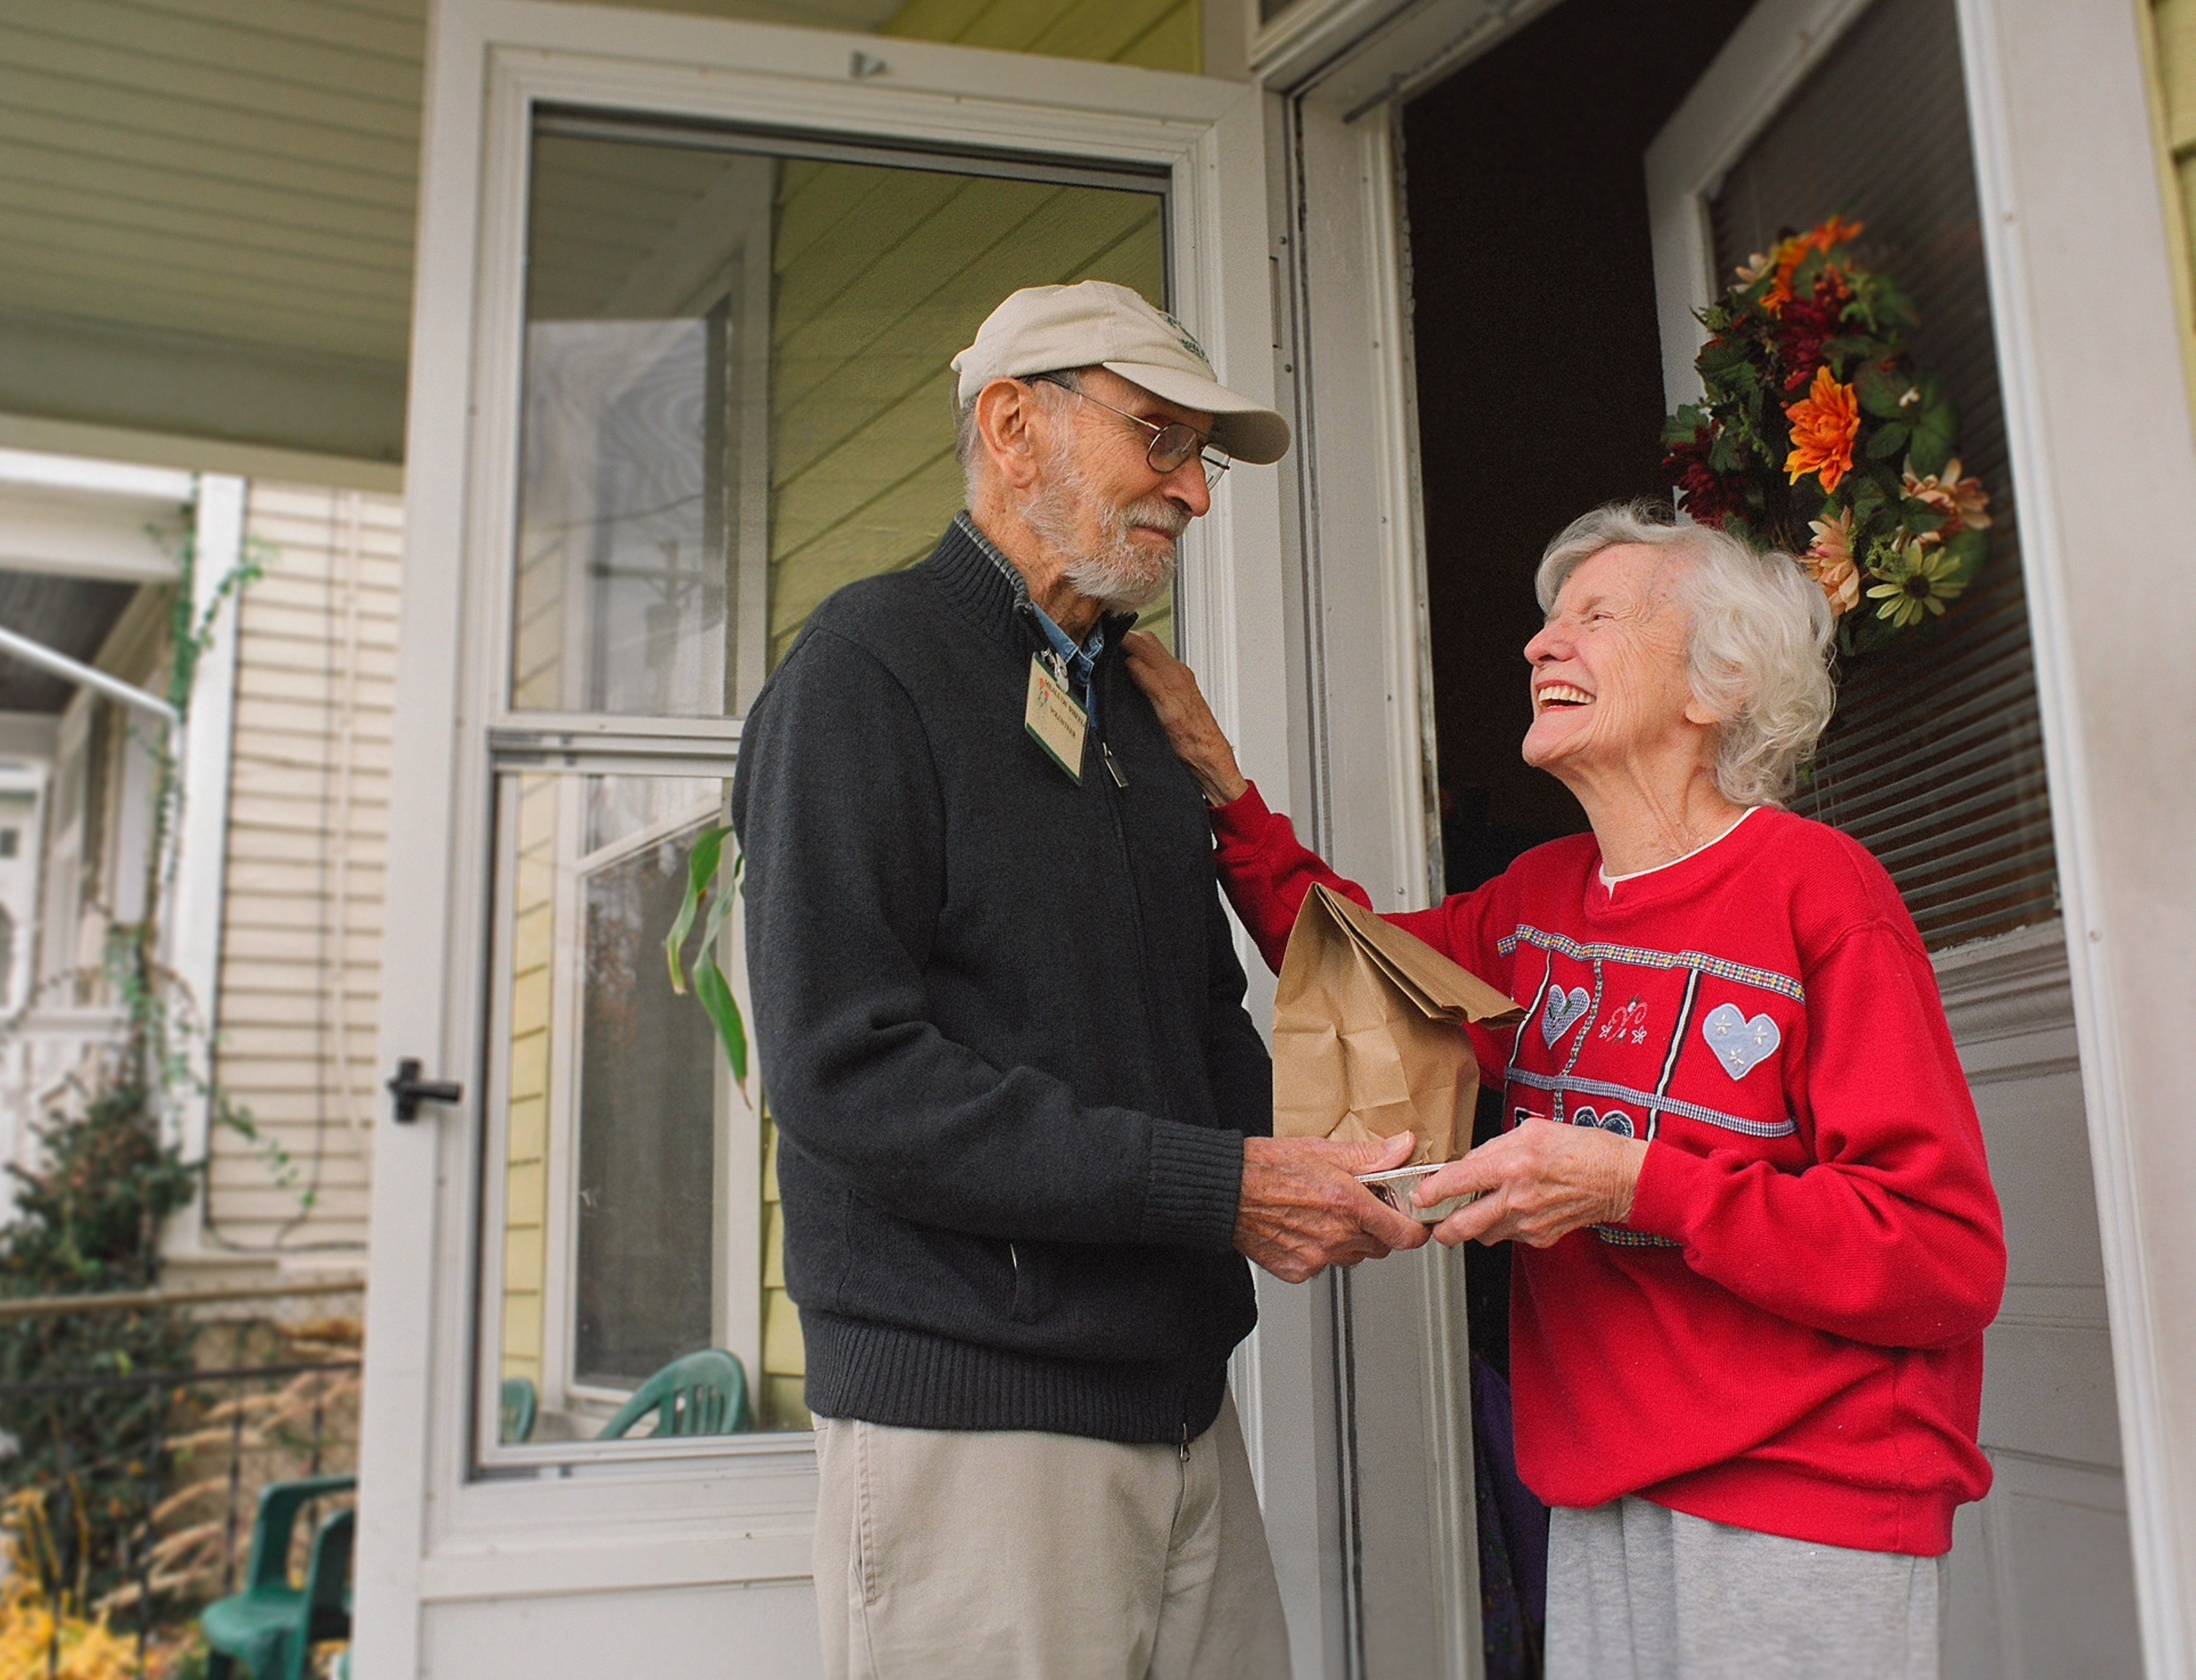 Deupree Meals On Wheels Breaks Records in 2016